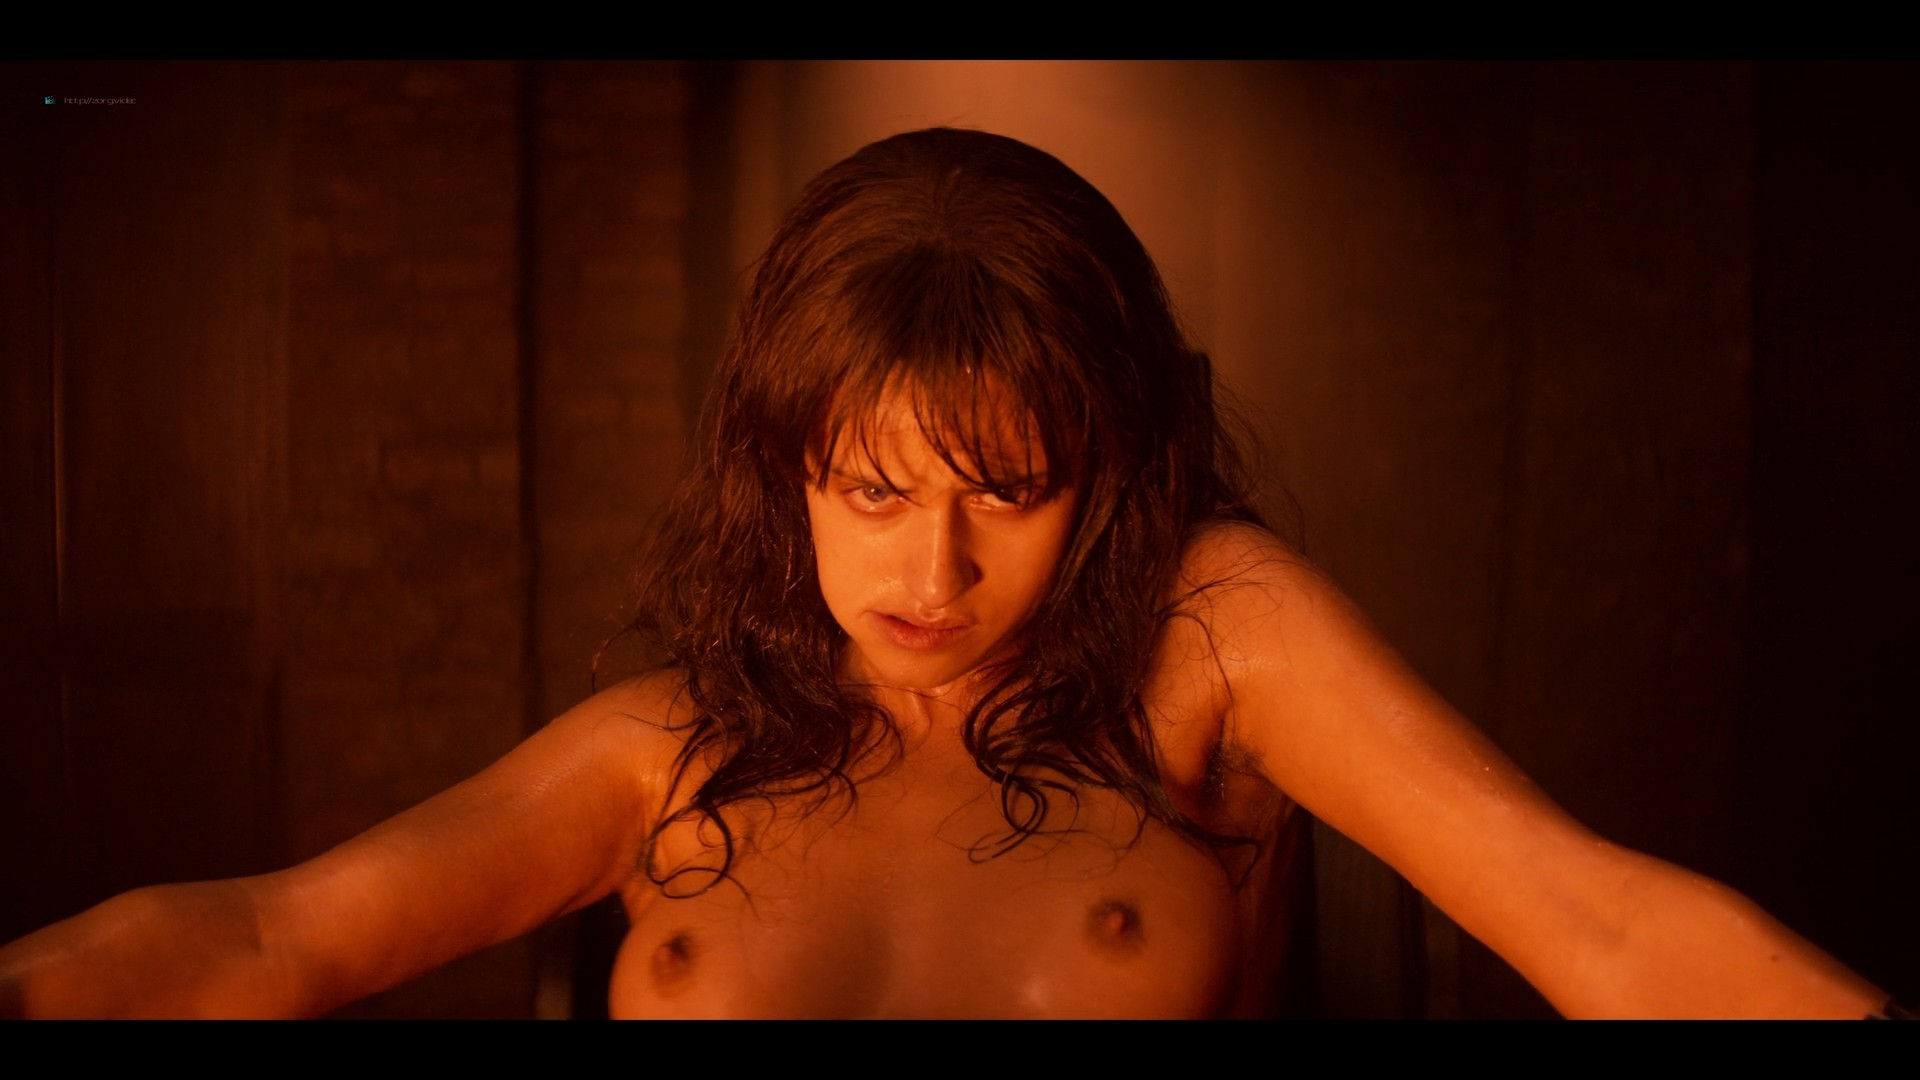 Anya Chalotra nude sex others nude too - The Witcher (2019) s1e1-3 HD 1080p WEB-DL (6)